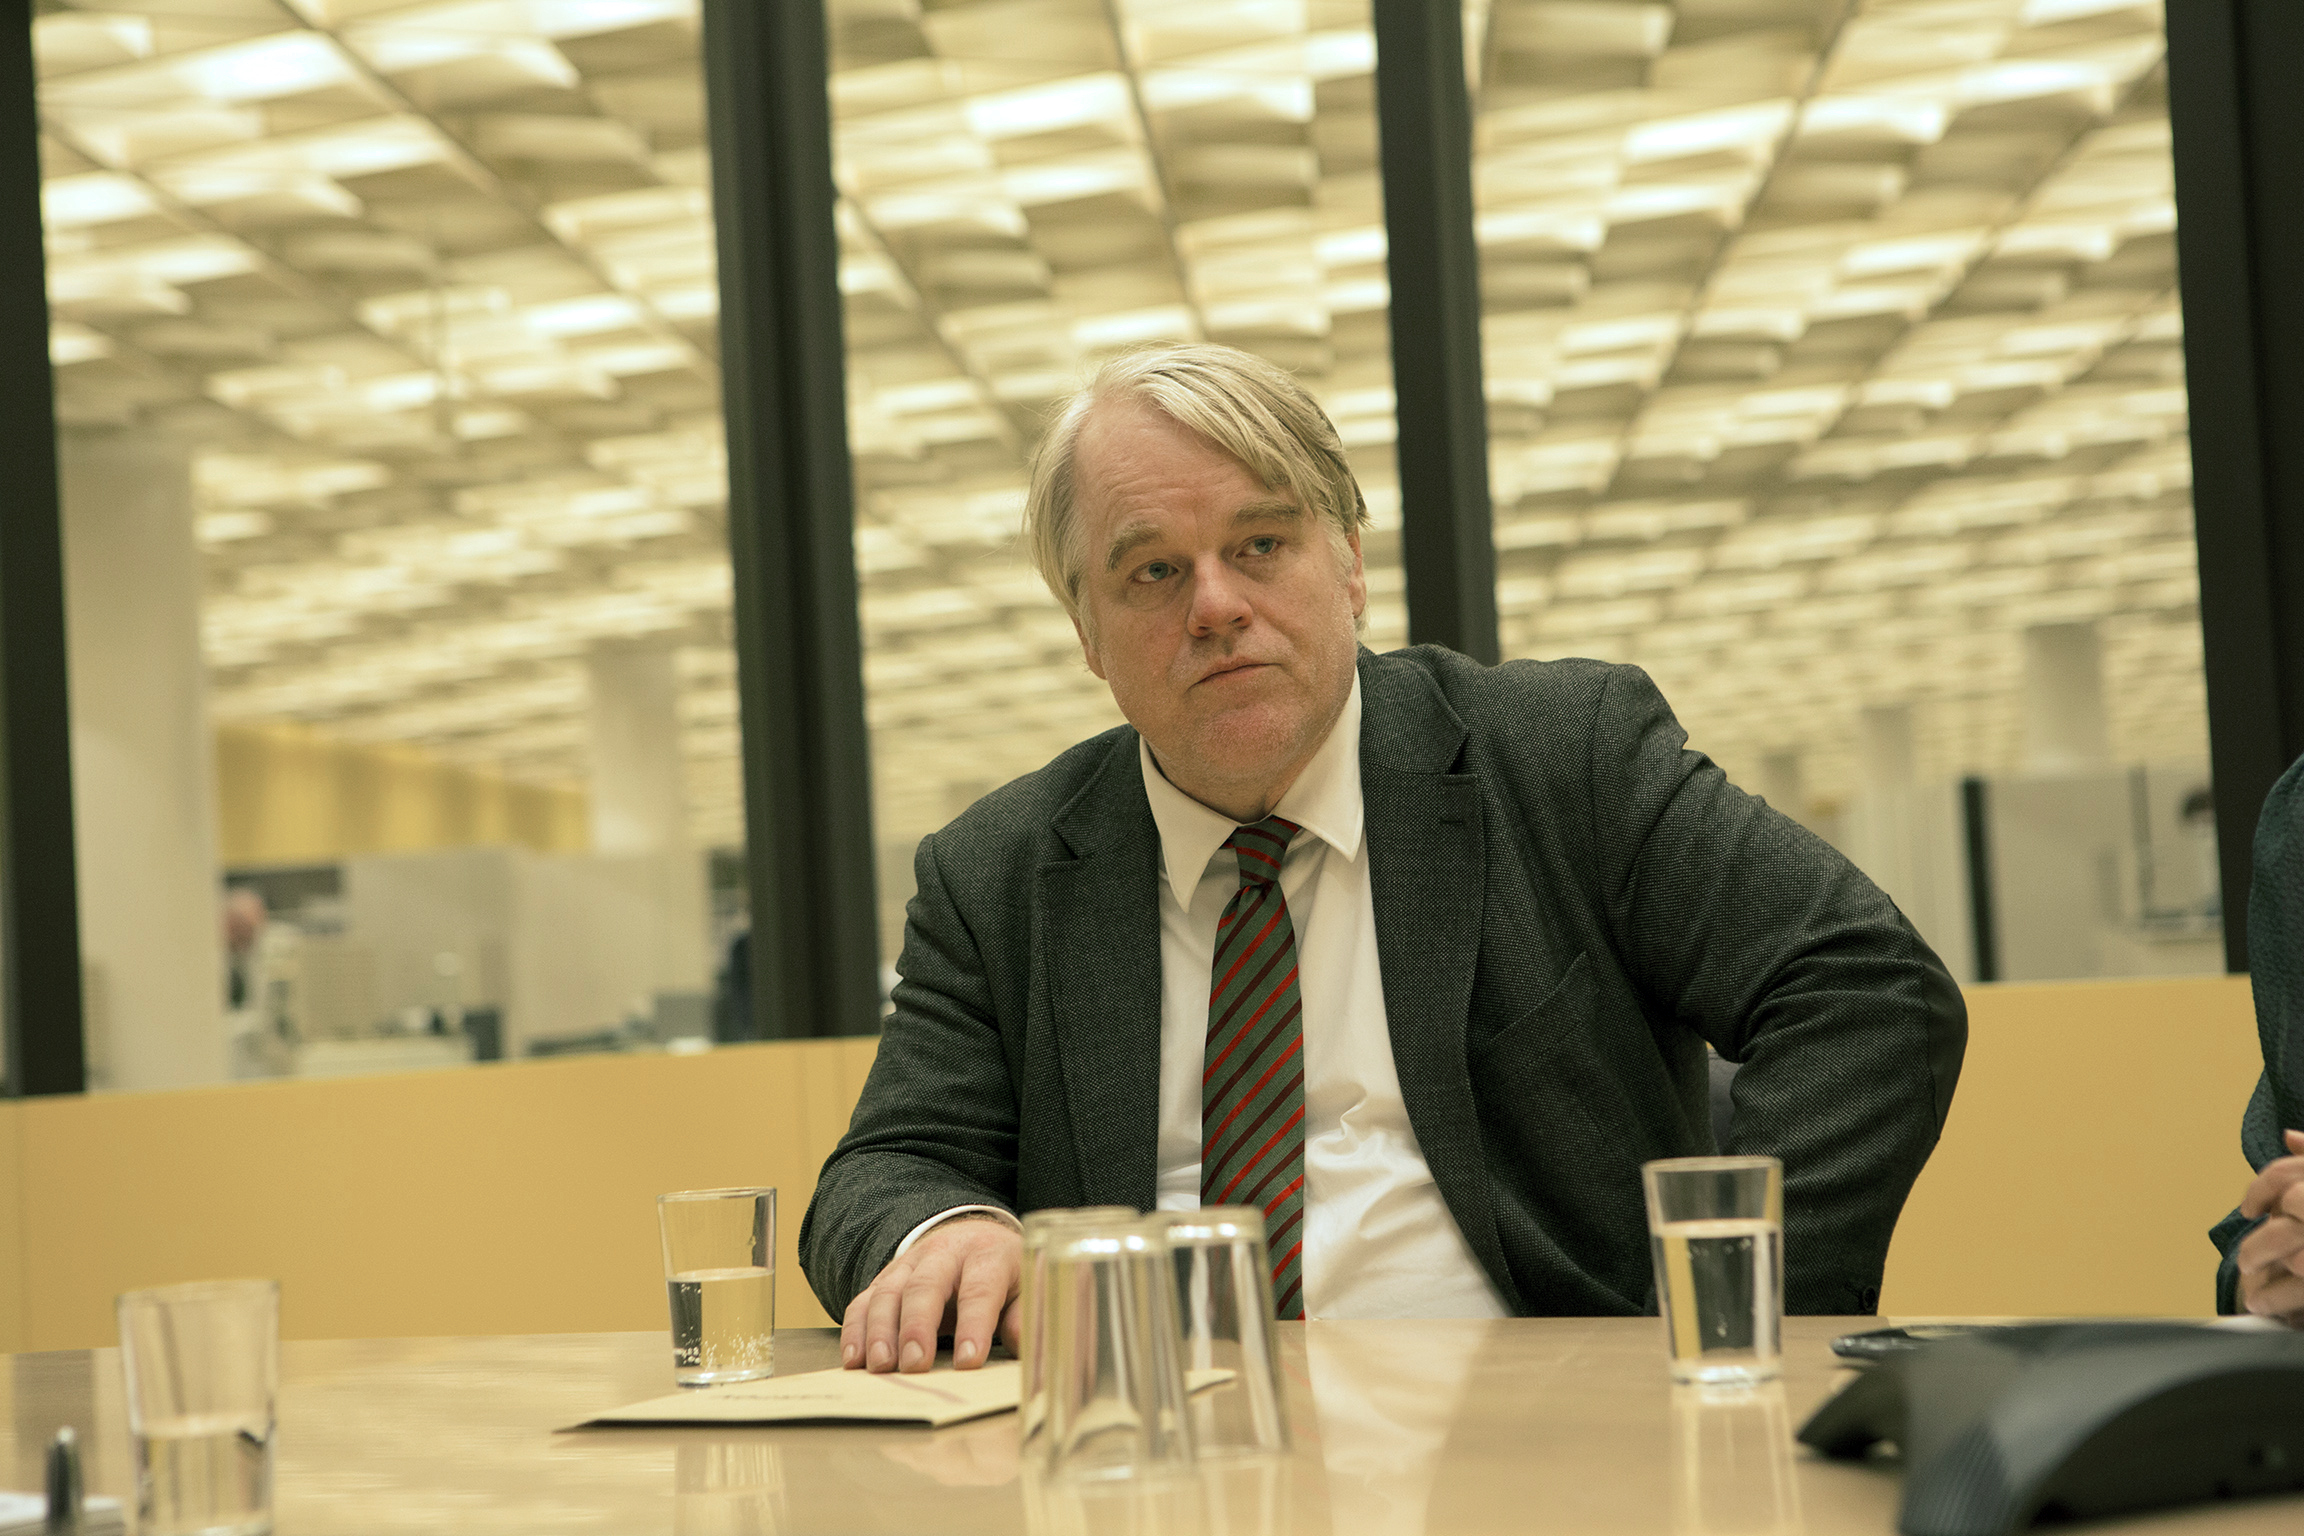 Philip Seymour Hoffman as Günther Bachmann in A Most Wanted Man, 2014